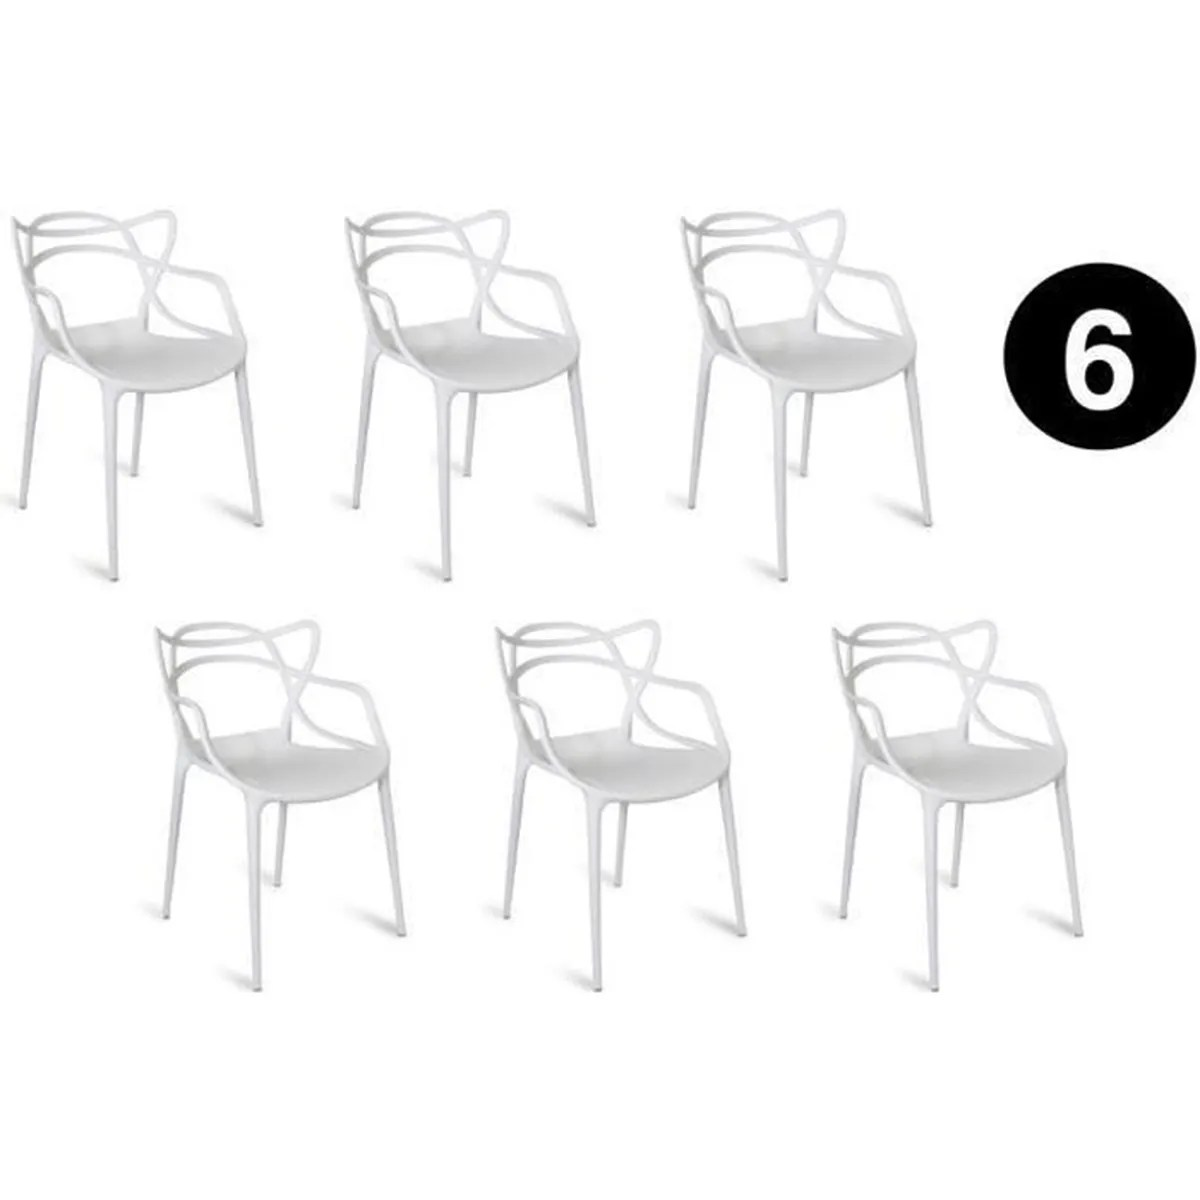 Chaises Masters Pas Cher Chaises Masters Cool Chaise Lot De Chaises Masters Blanc